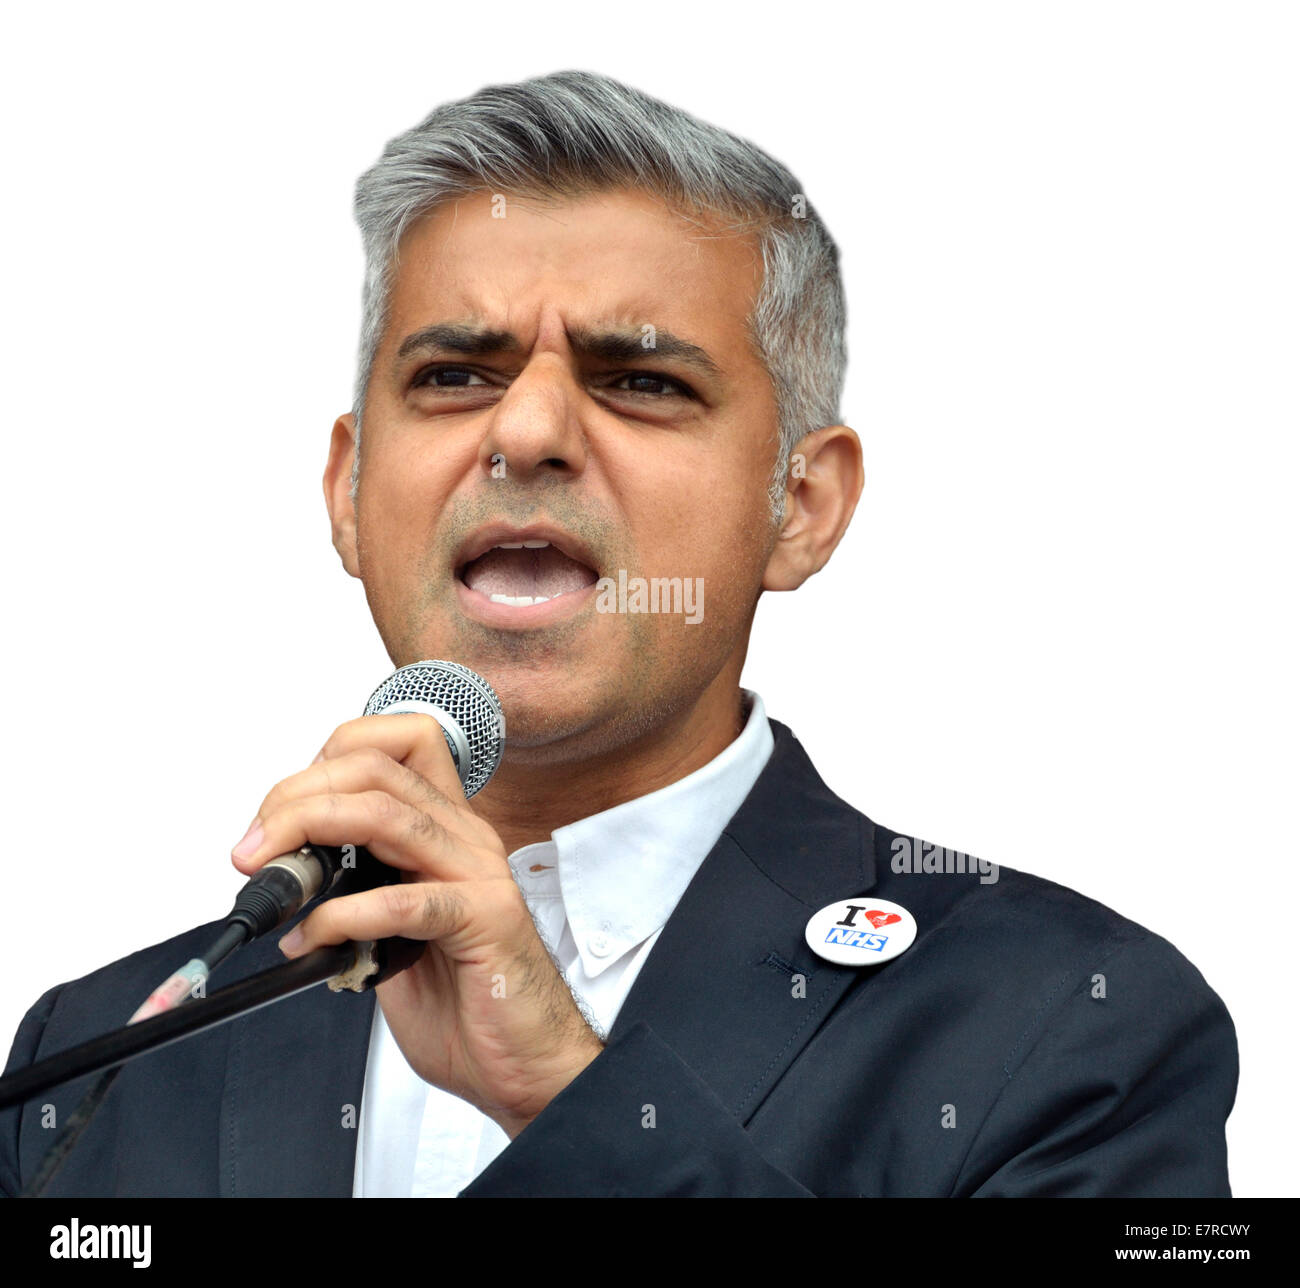 Sadiq Khan MP (Labour, Tooting) Shadow Secretary of State for Justice - Stock Image